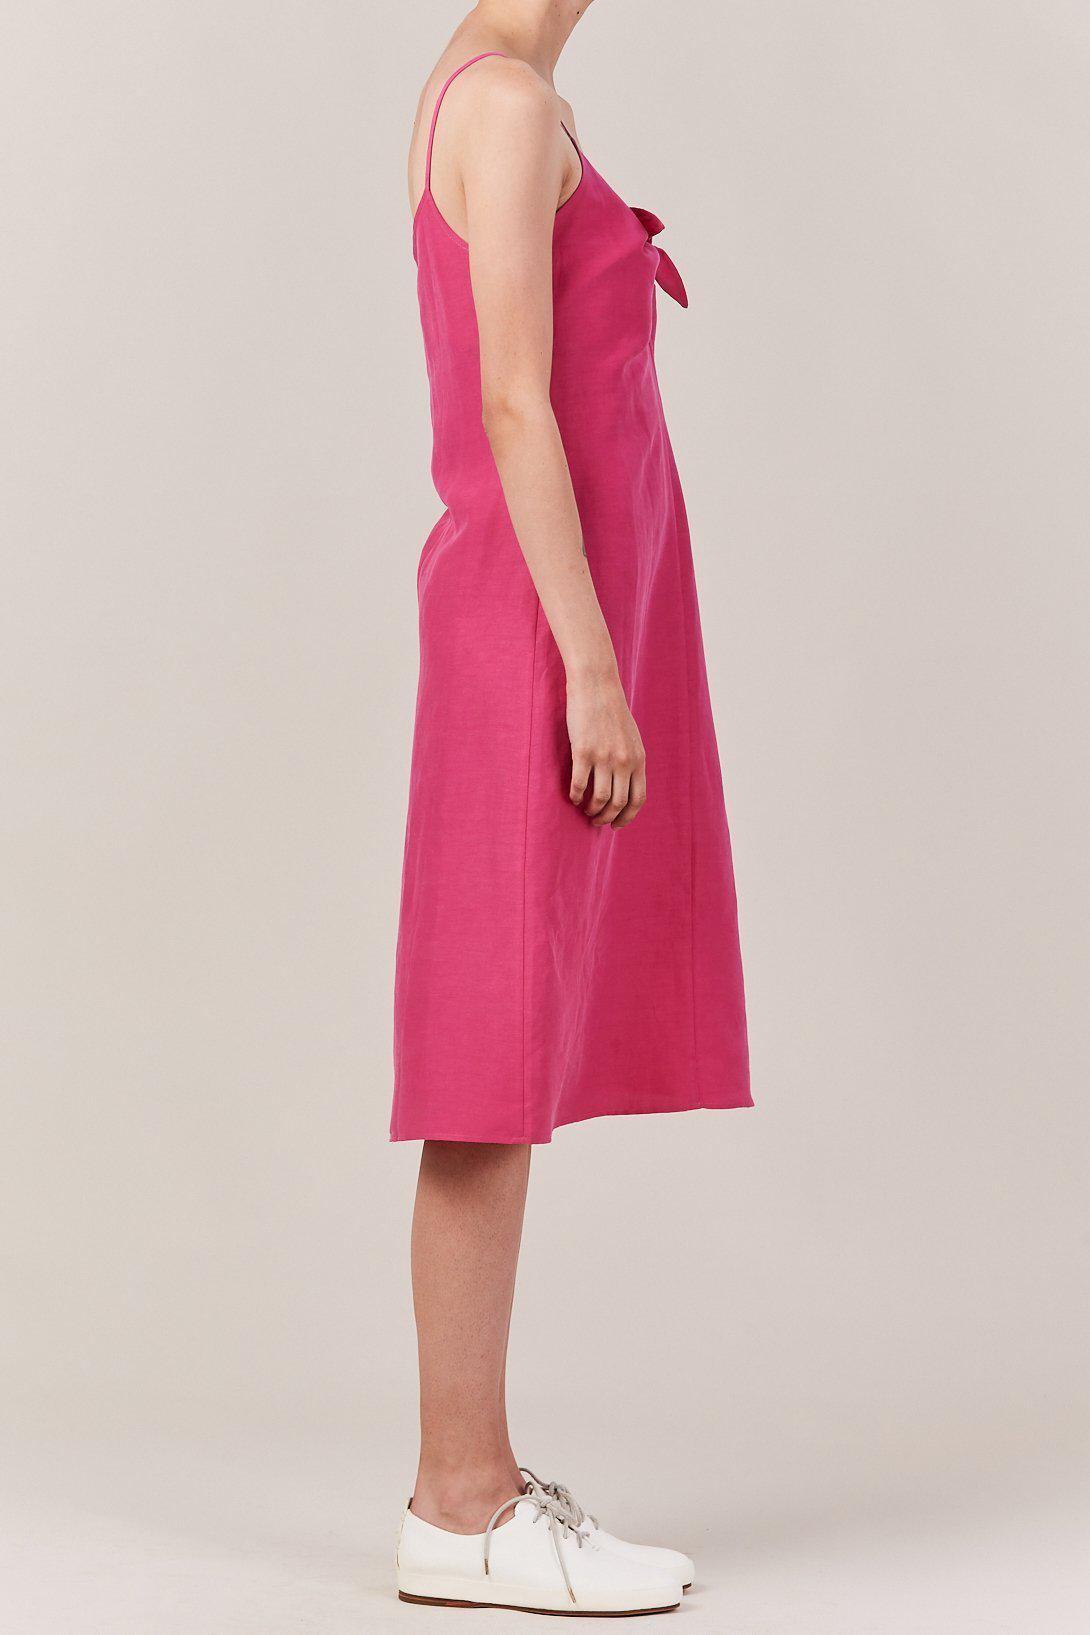 Pink Oriska Dress Simon Miller New And Fashion Discount Cheapest Sale Fashionable Free Shipping Find Great H1AAPKYSX